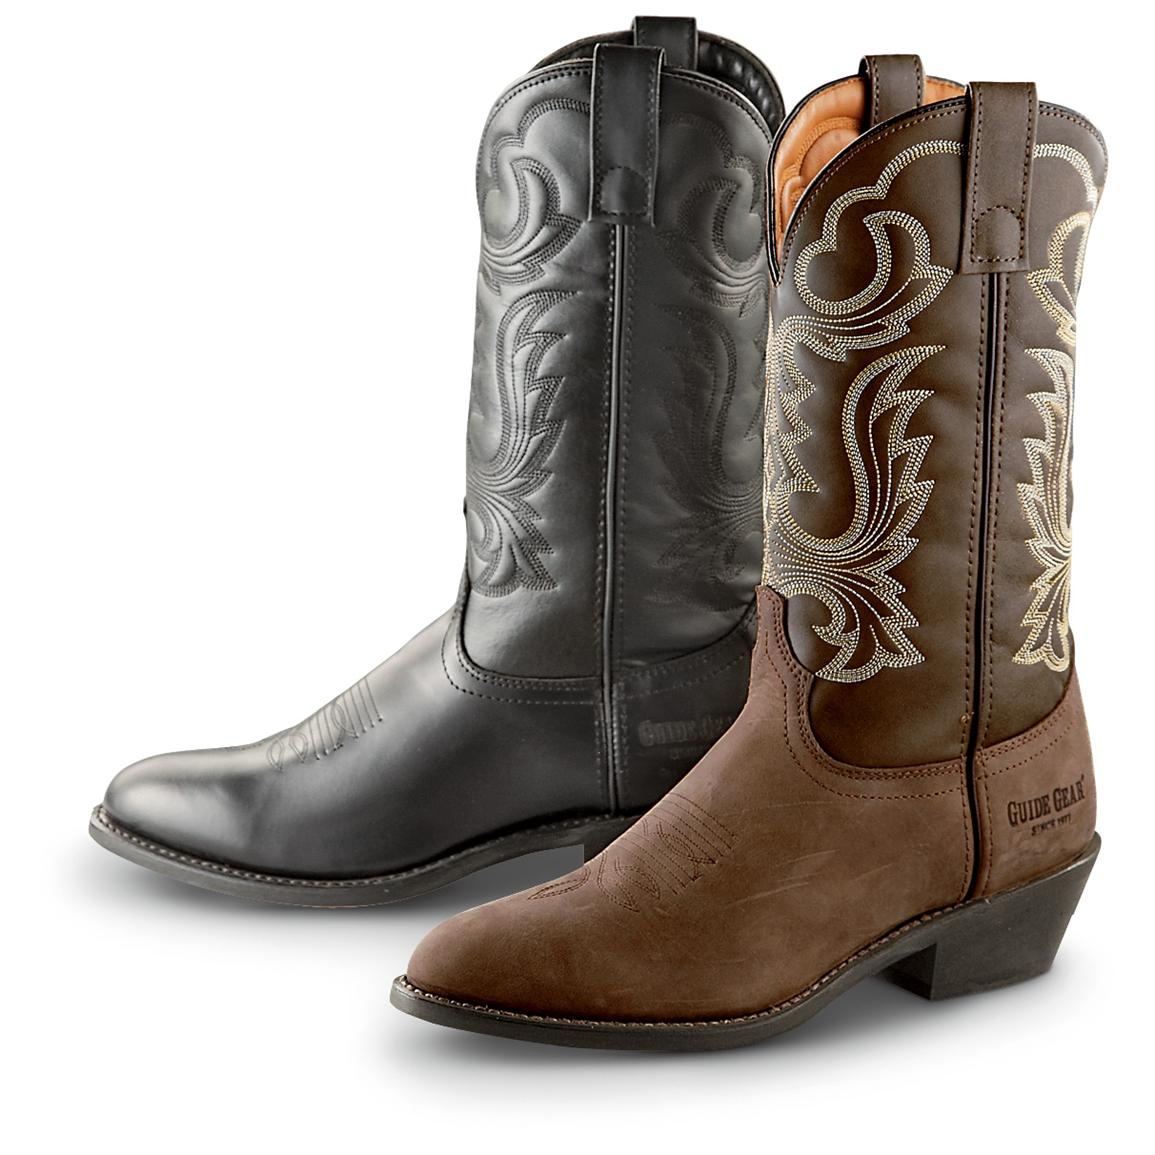 Mens Cowboy Boots On Sale nANMBoOm